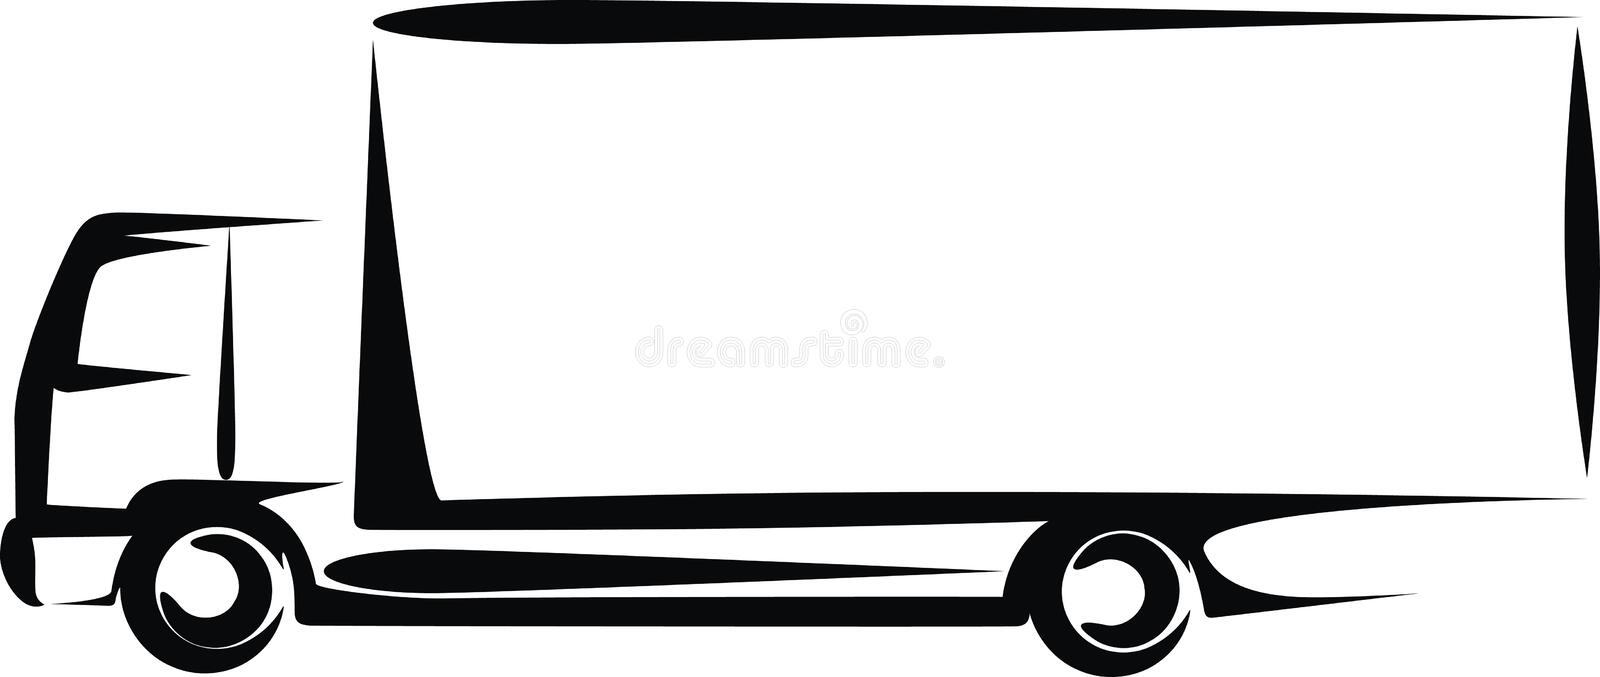 Truck. Simple illustration with a truck